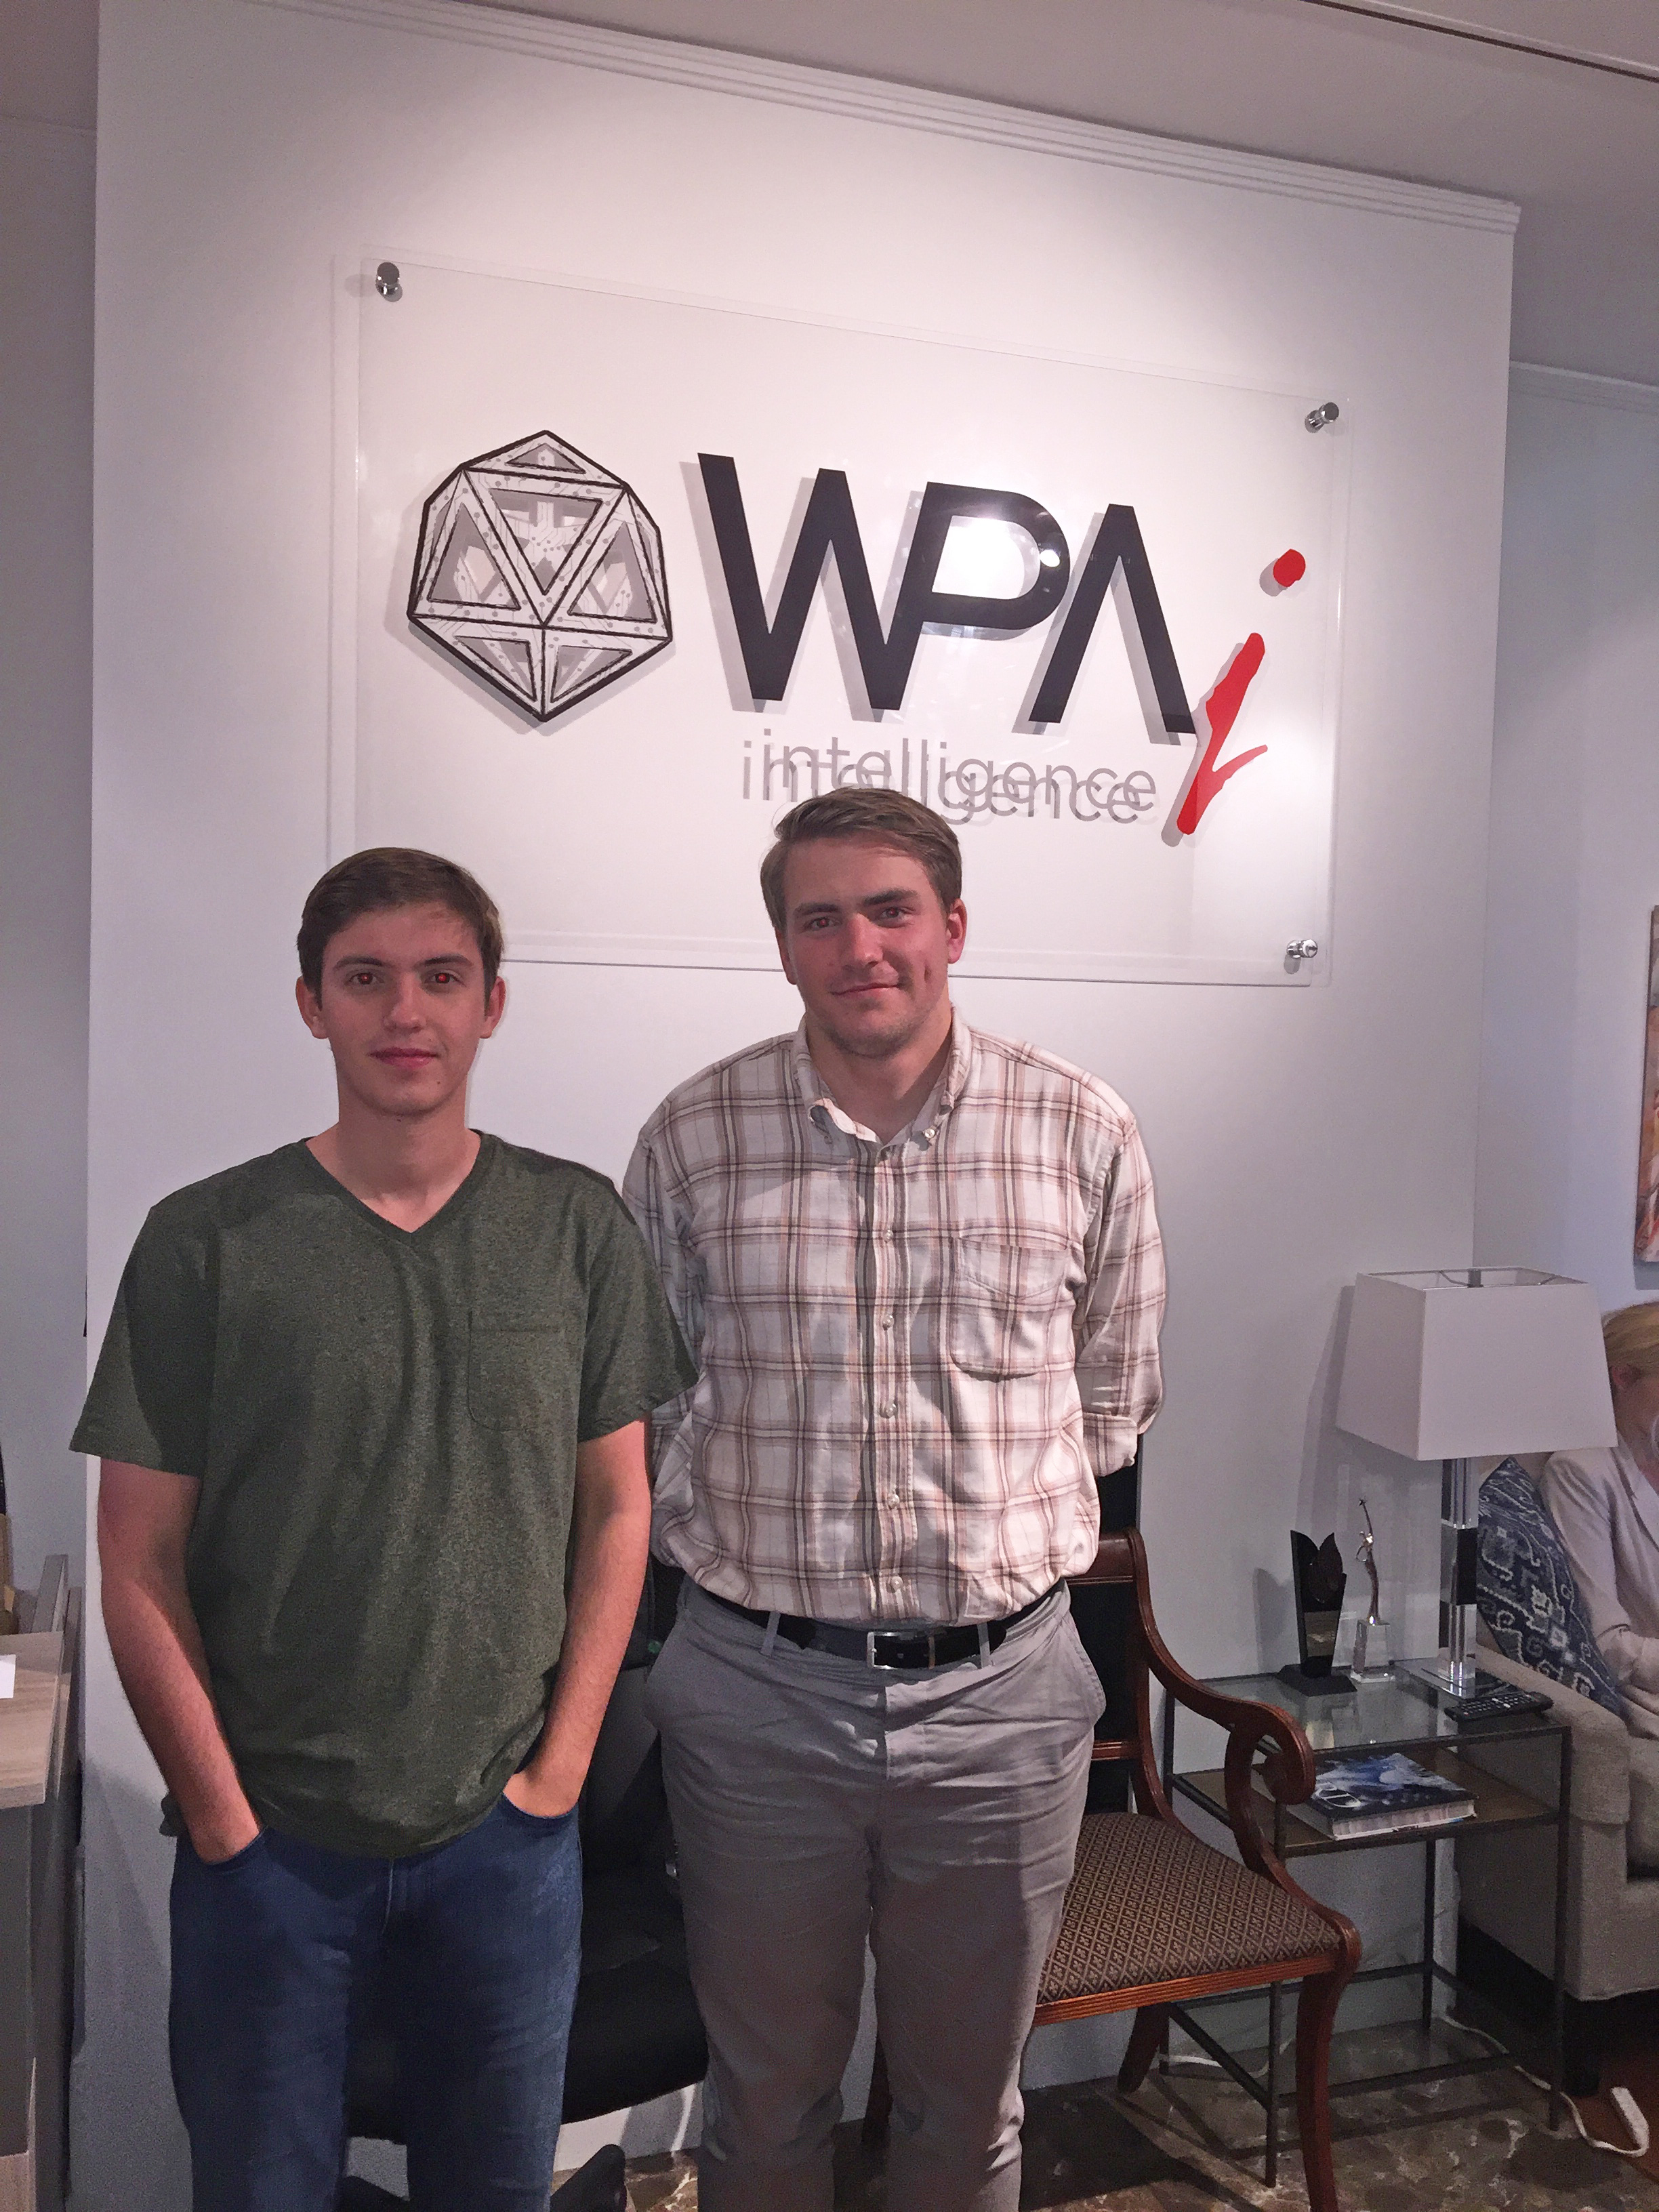 Washington D.C. Politics interns Angus T. and Ethan H.